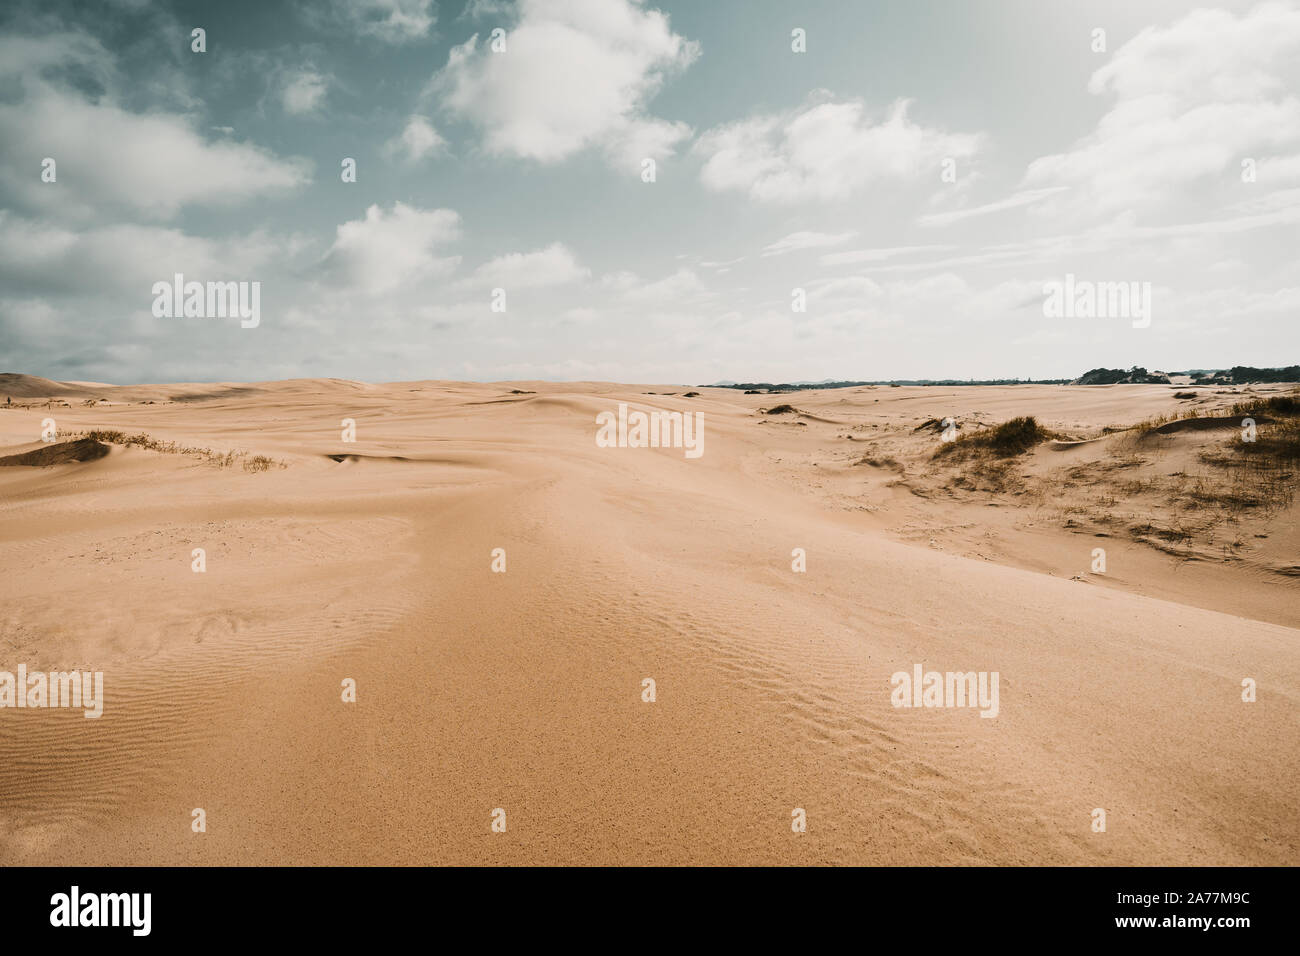 Blue Sky at the Sand Dune in Australia Stock Photo